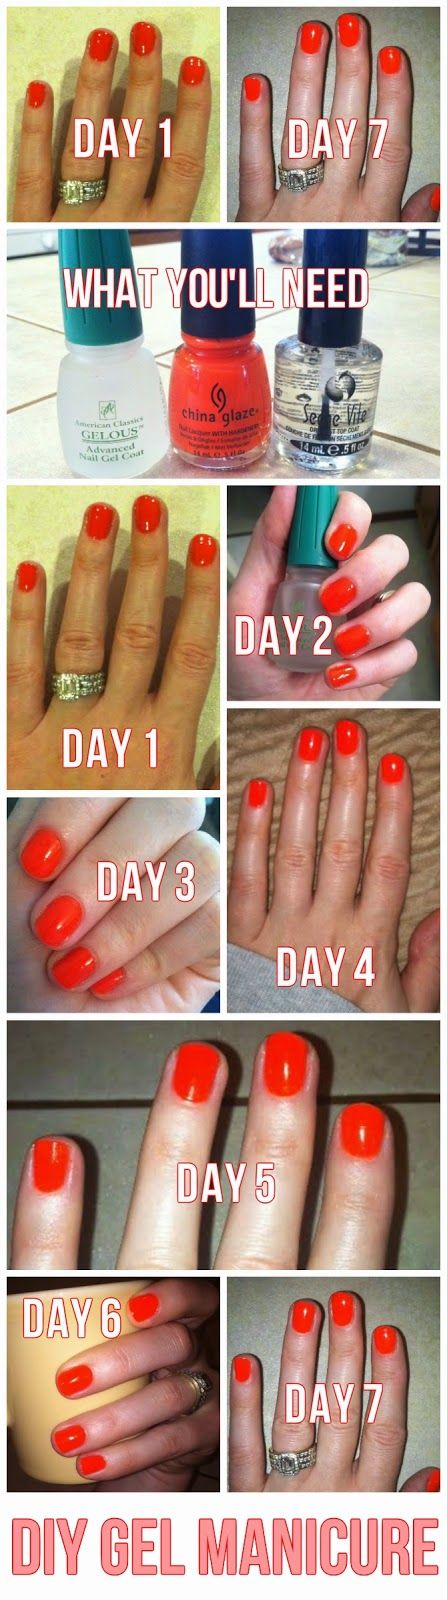 DIY Gel Manicure